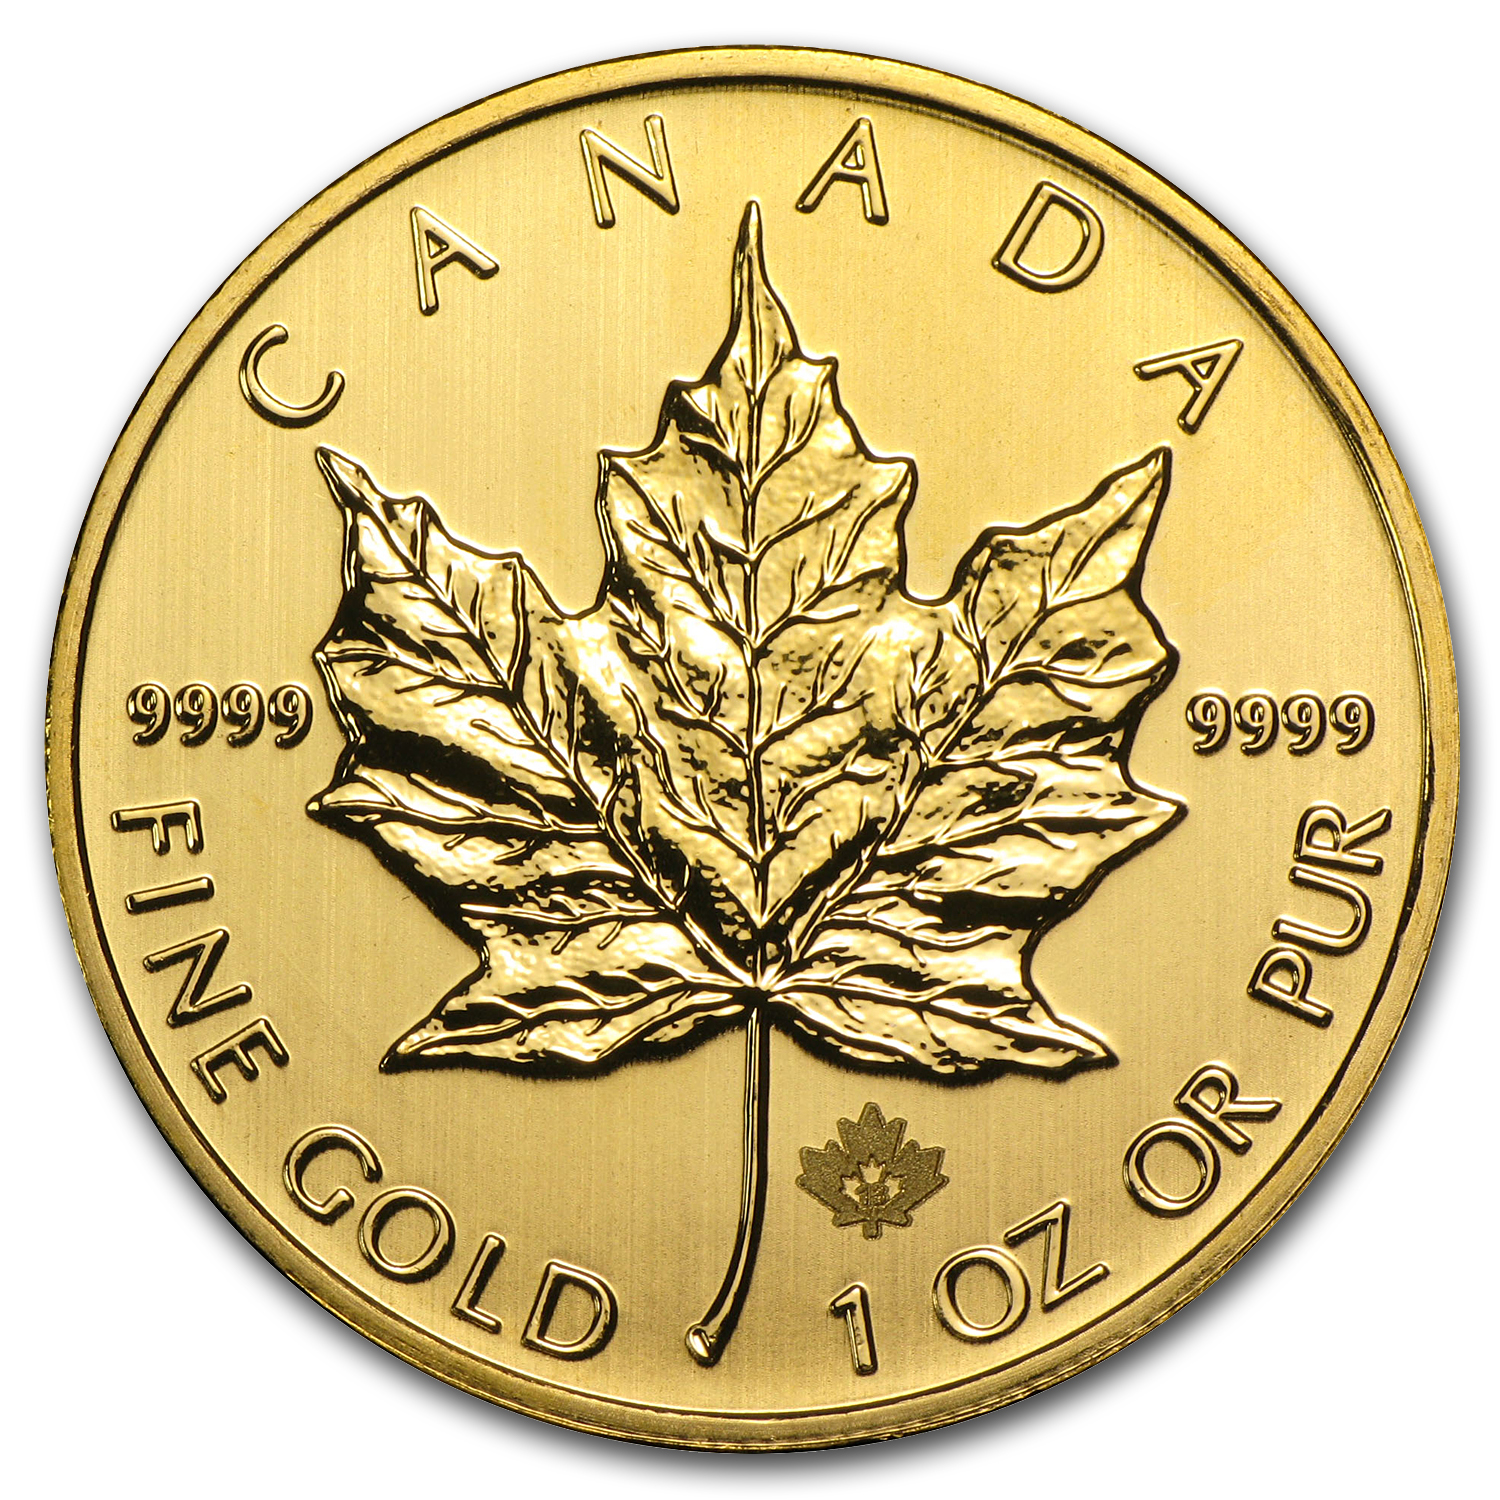 2013 1 oz Gold Canadian Maple Leaf BU